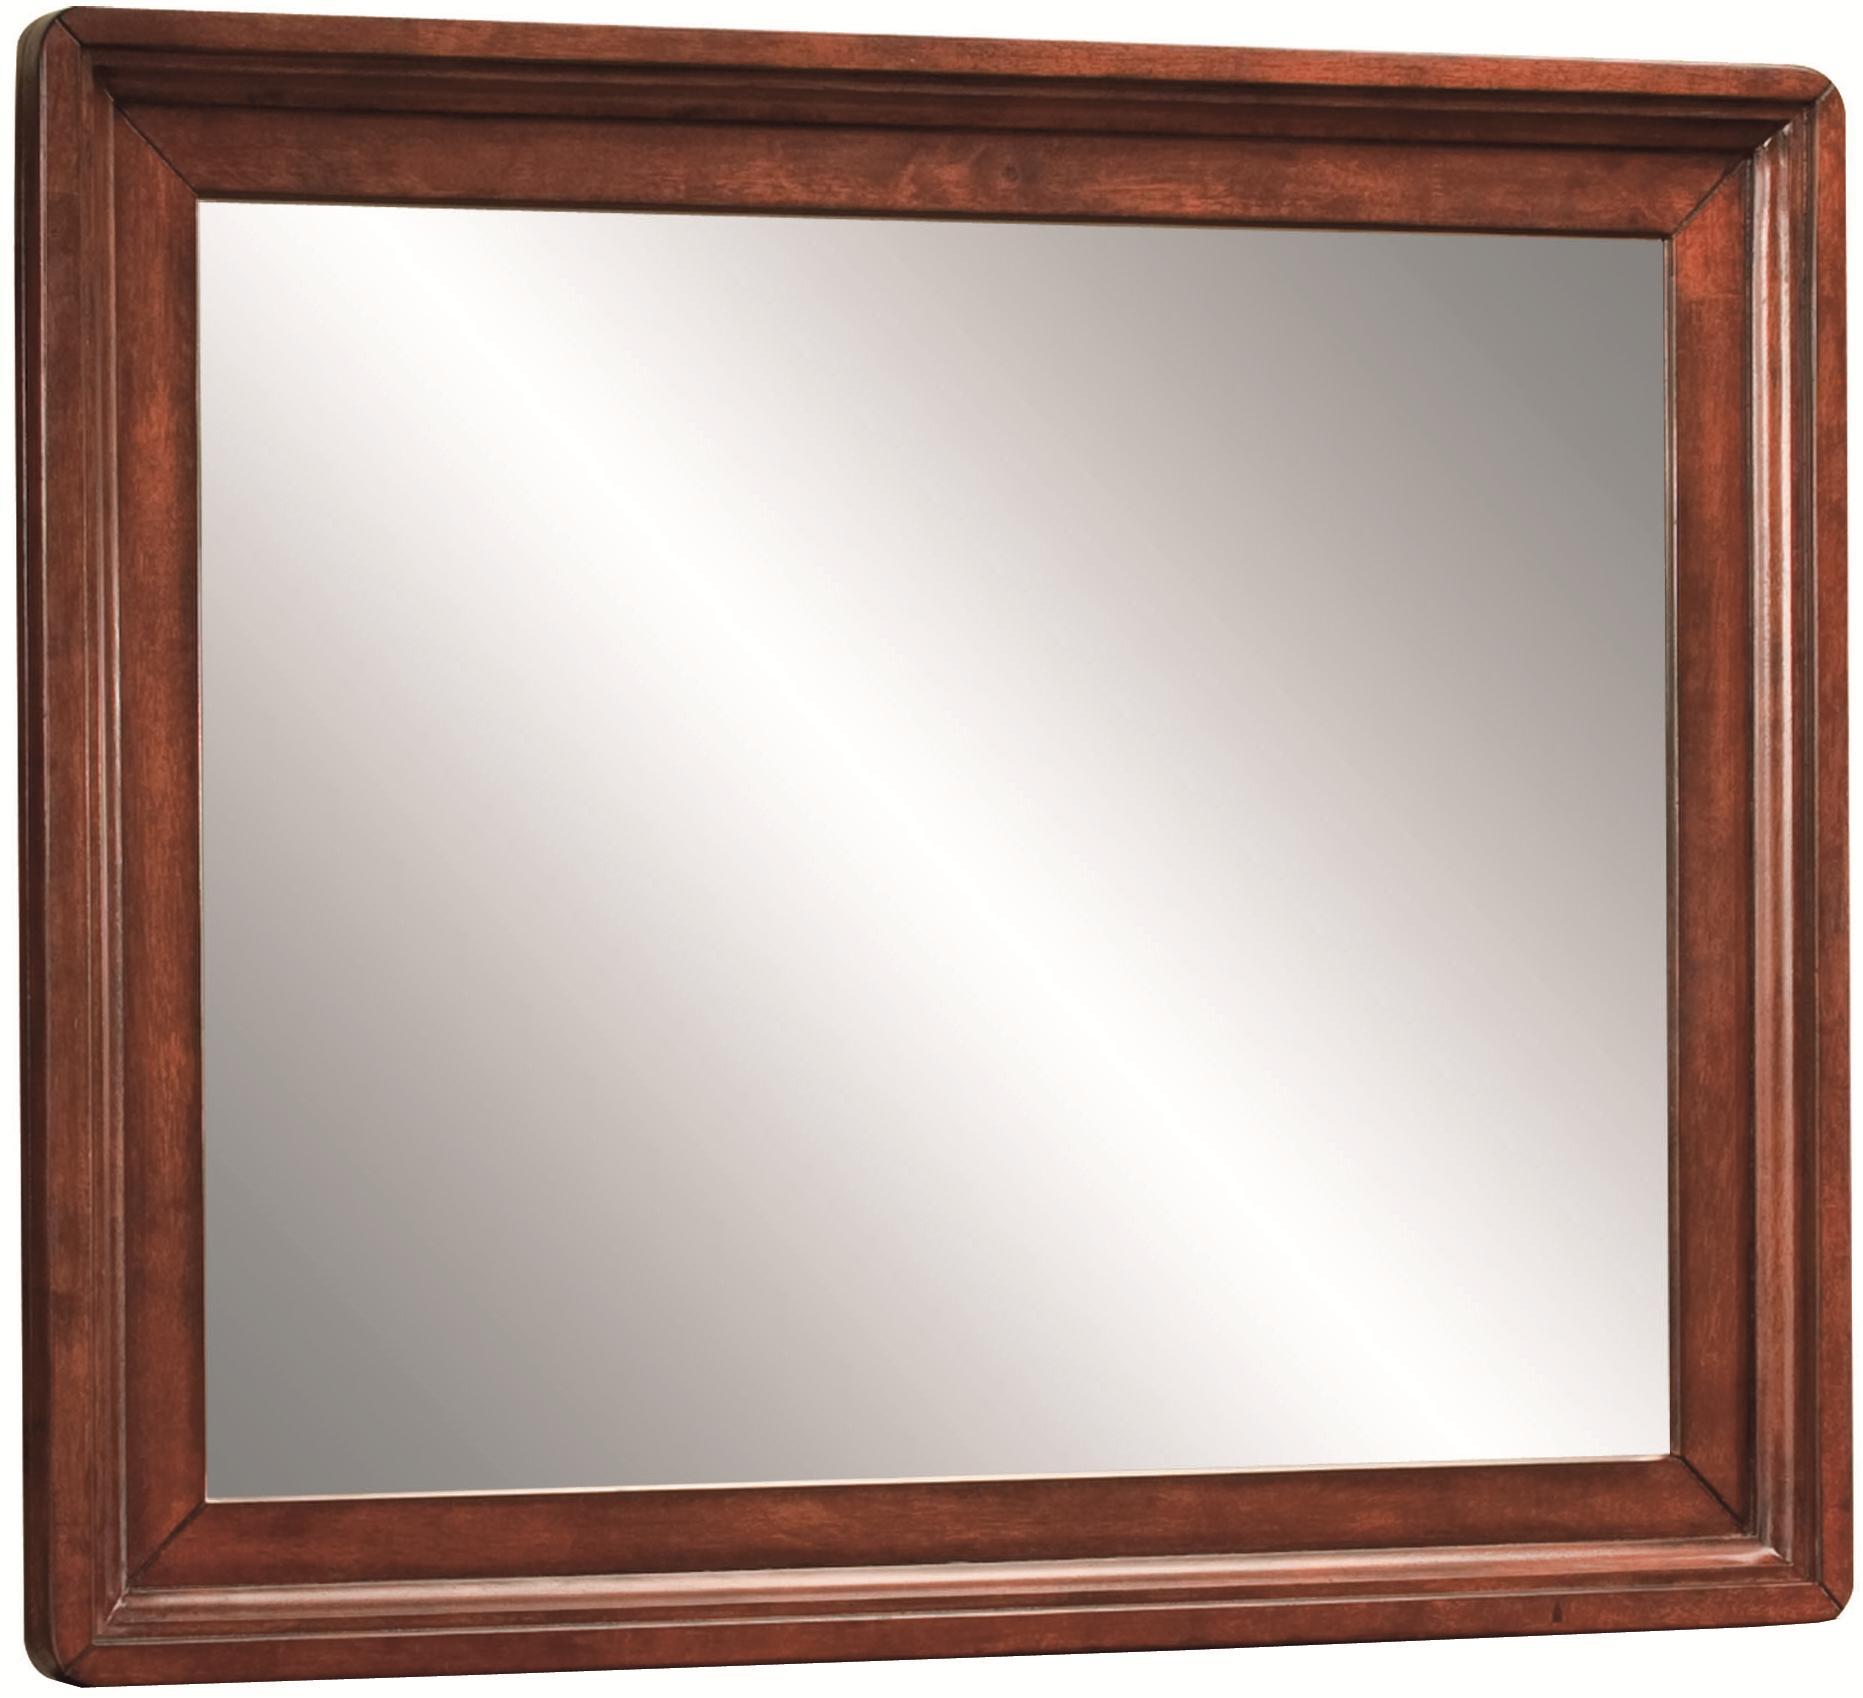 Aspenhome Madison Mirror - Item Number: IA200-463-BRH